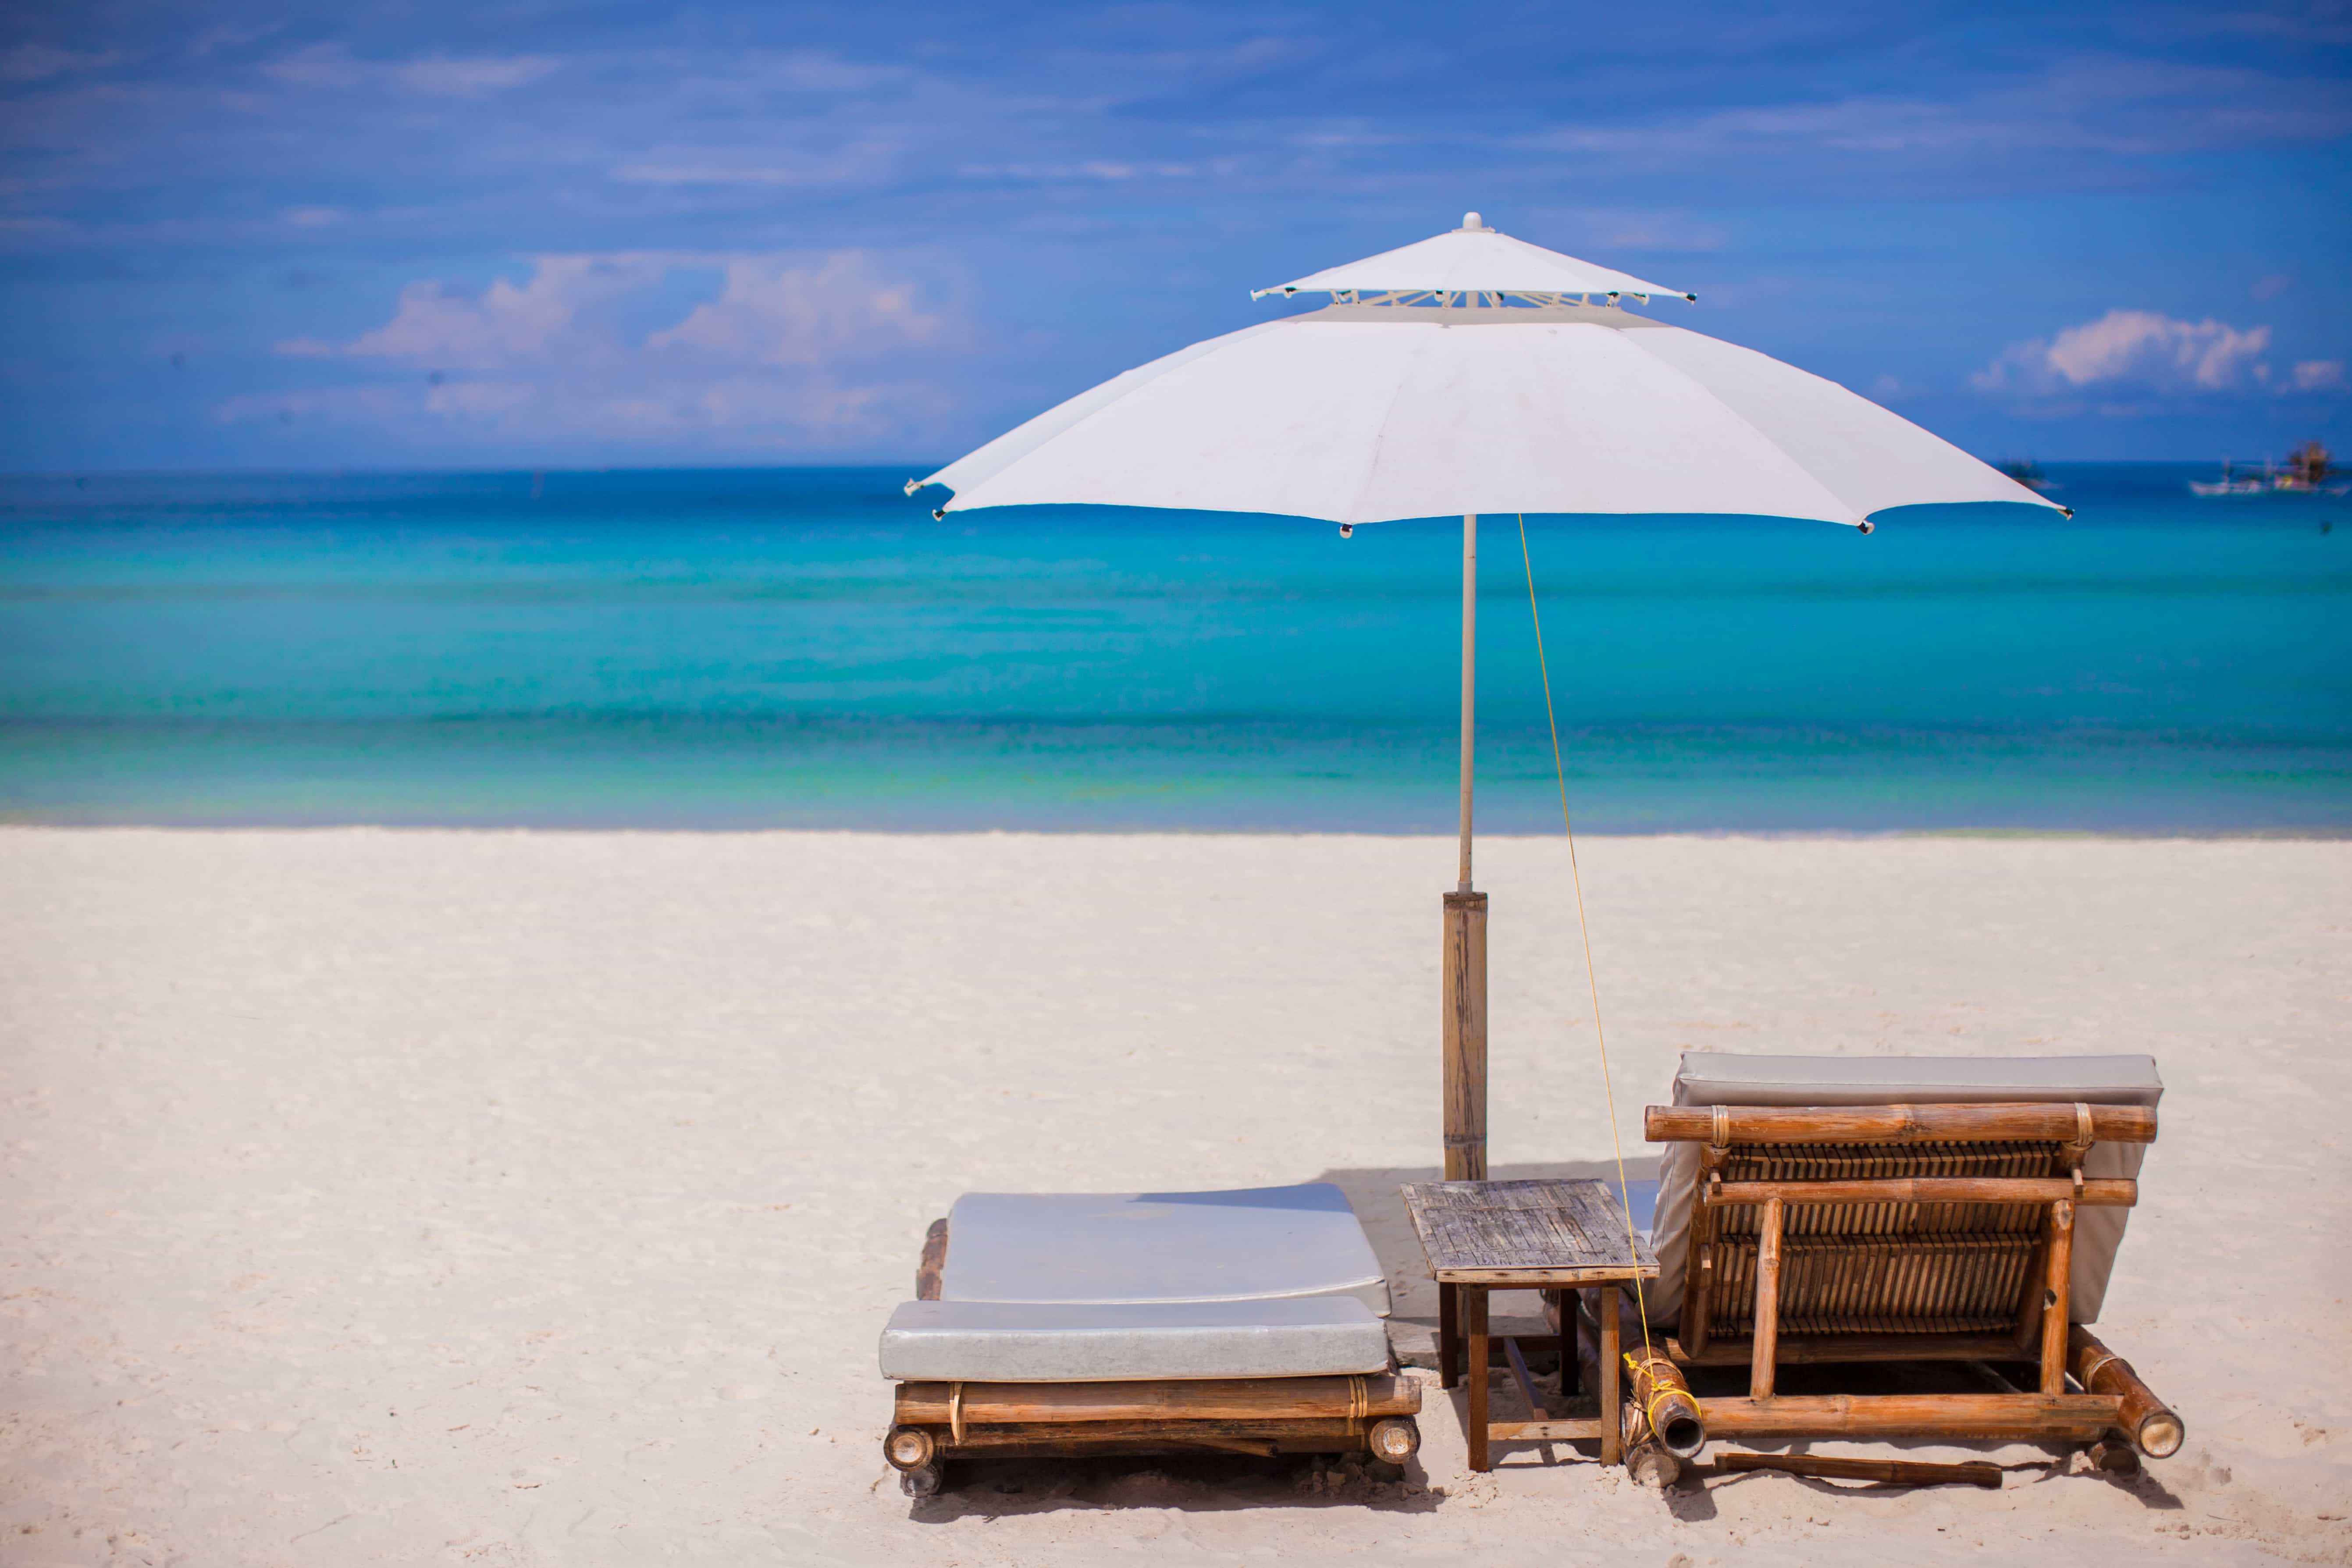 Wooden chairs on tropical beach vacation